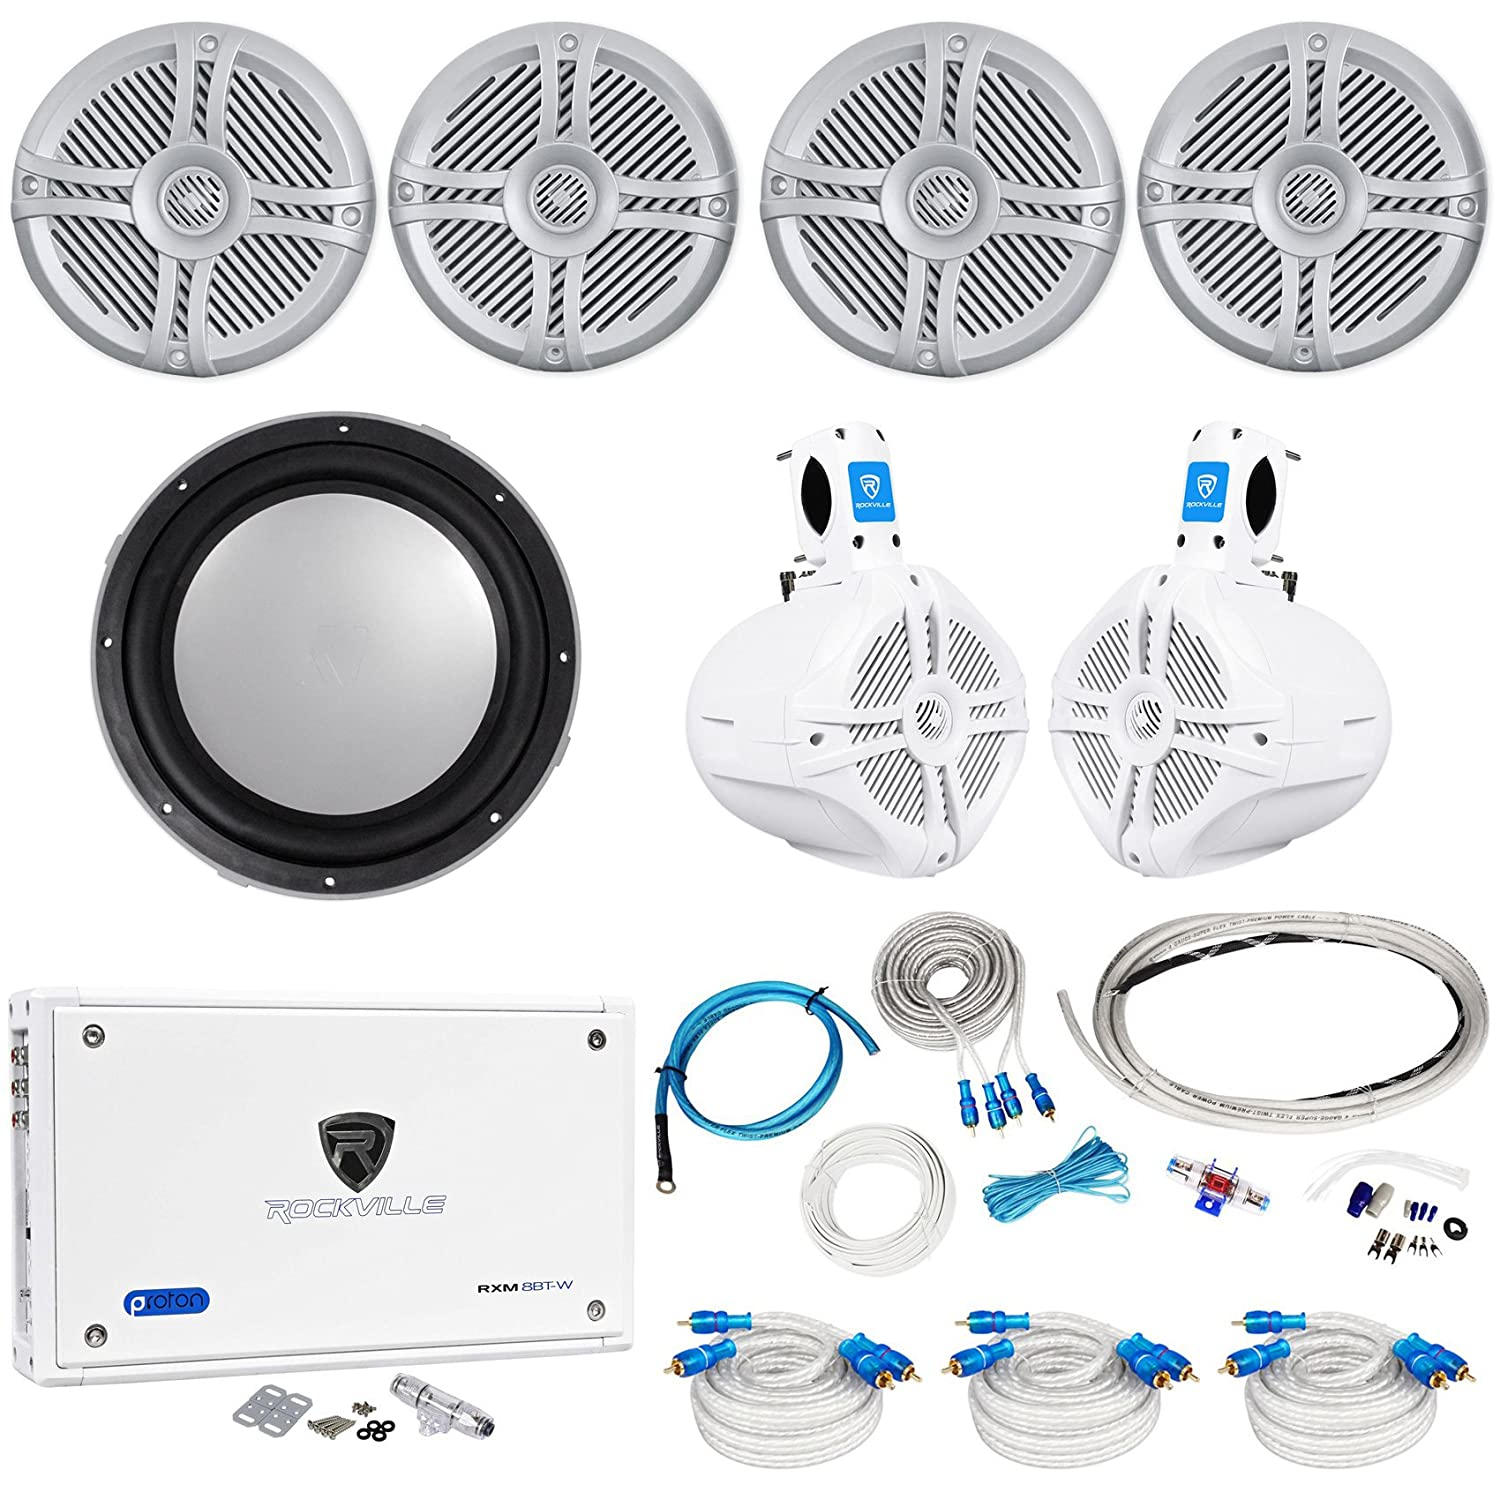 4 Rockville Rmsts65s 65 Marine Speakers Wakeboards Subwoofers Amplifiers At Sonic Electronix 2016 Car Release Date Kicker Sub Amp Wire Kit Electronics